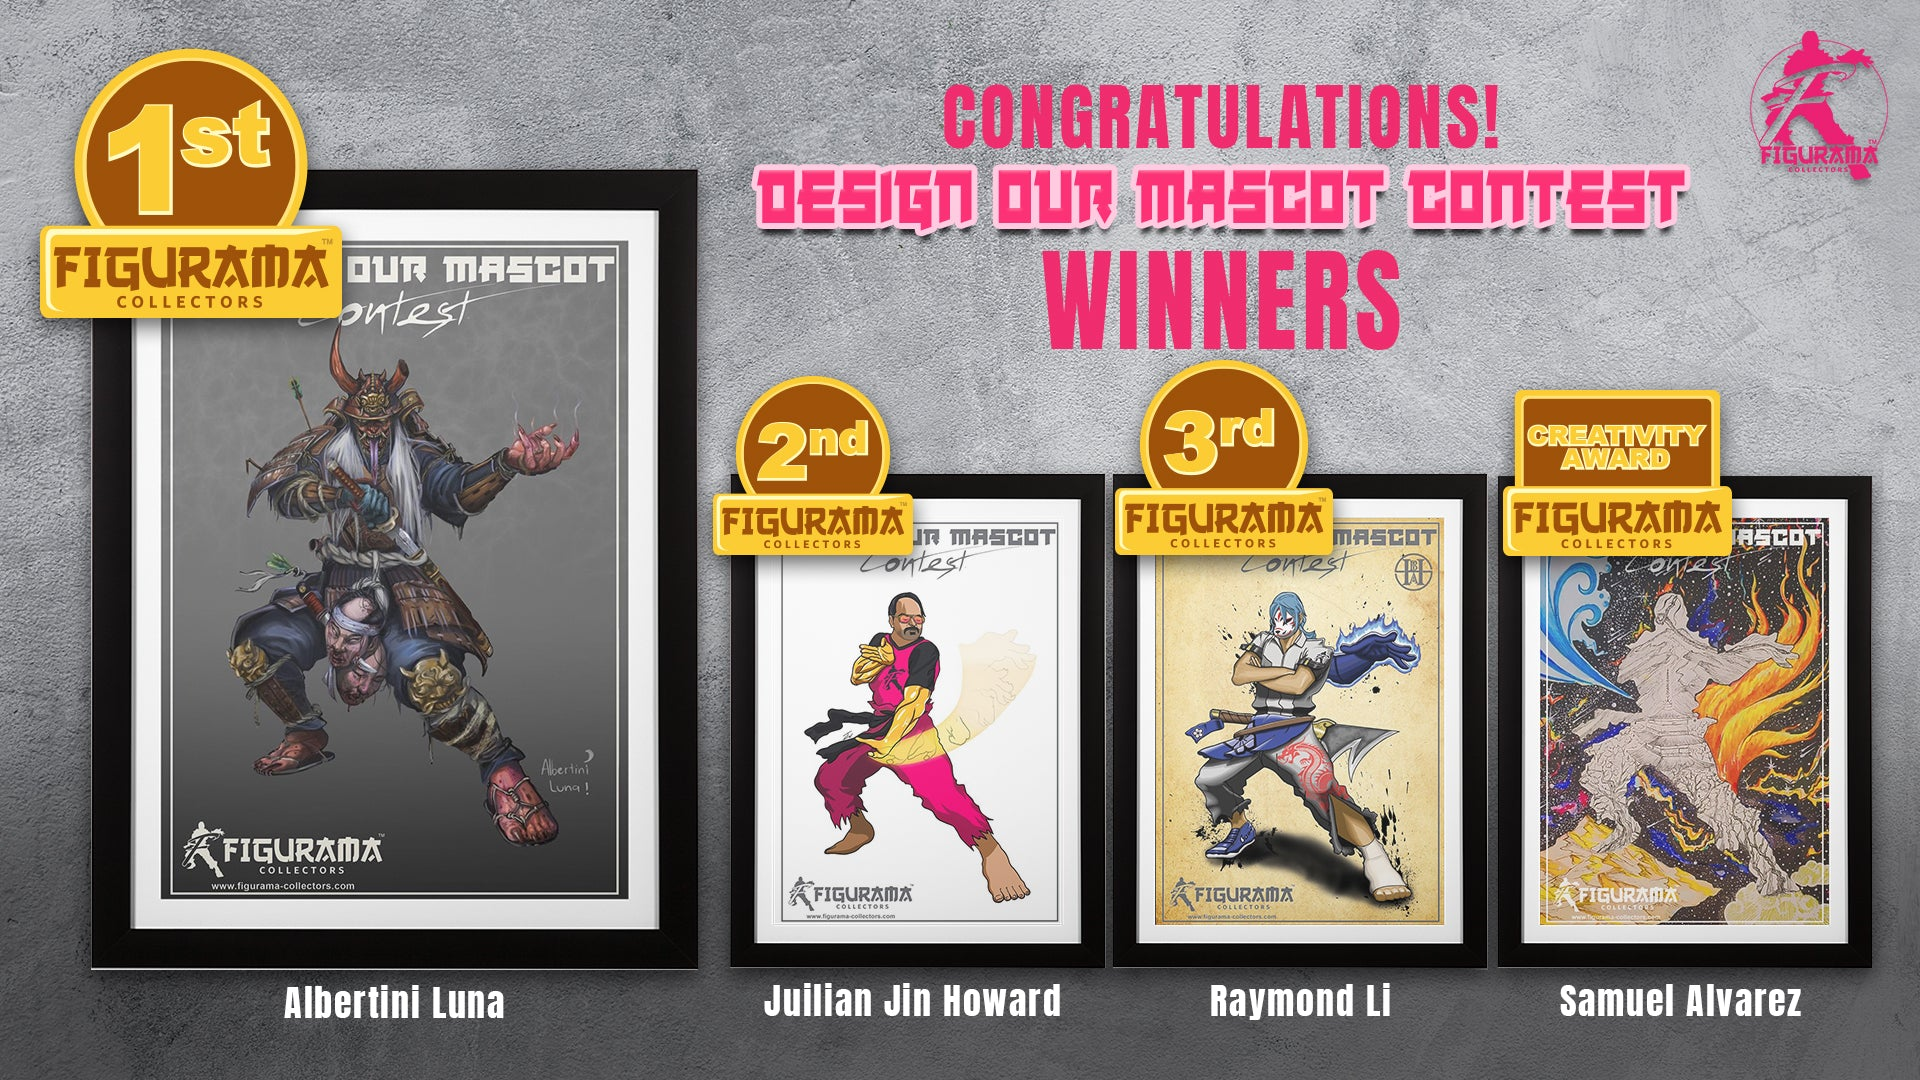 Design our Mascot Contest Winners!